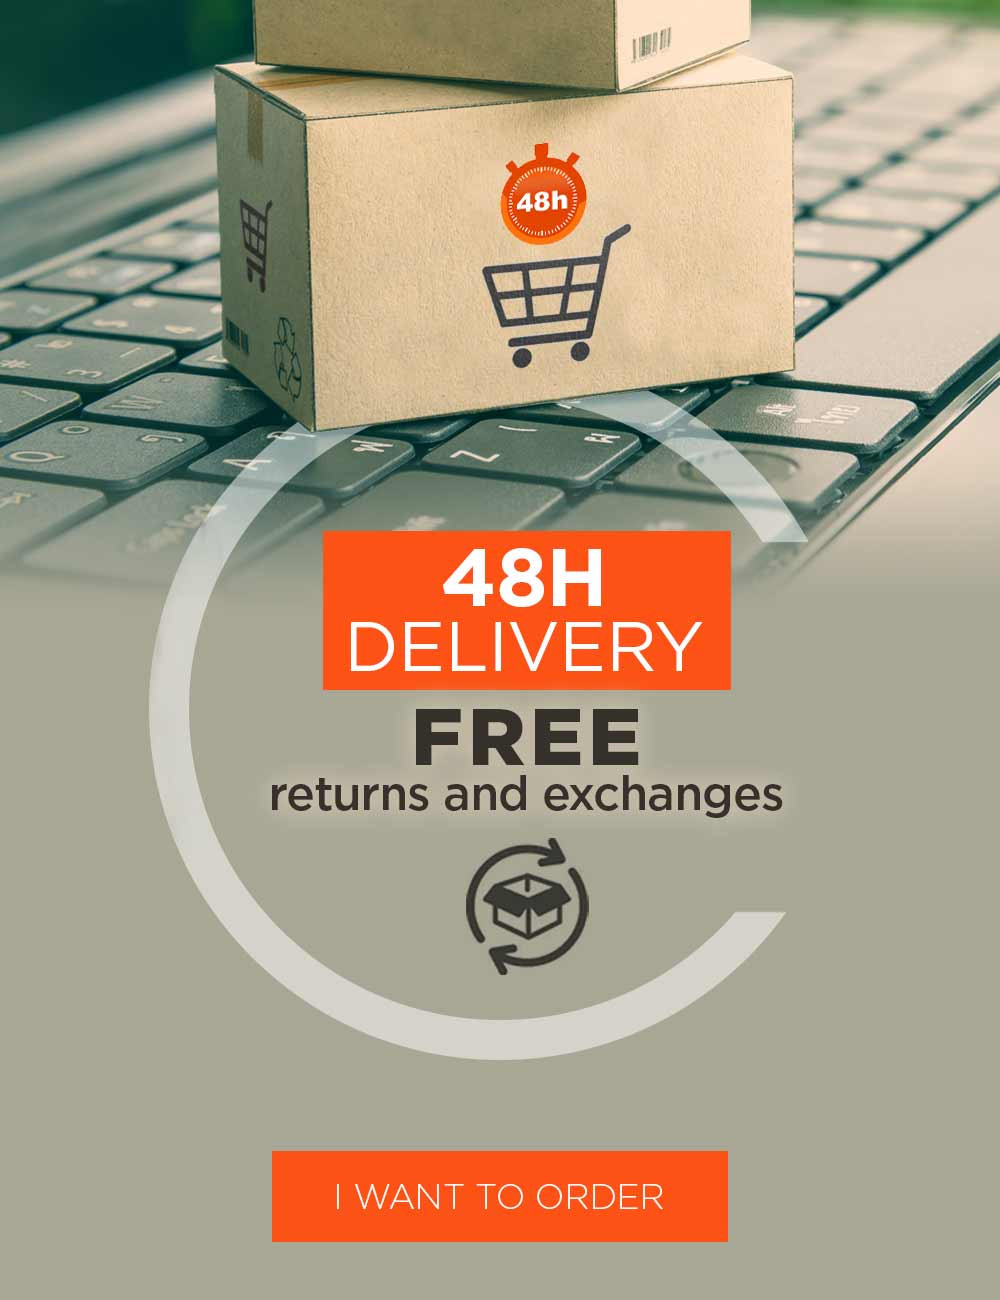 Enjoy a fast delivery in 48 hours